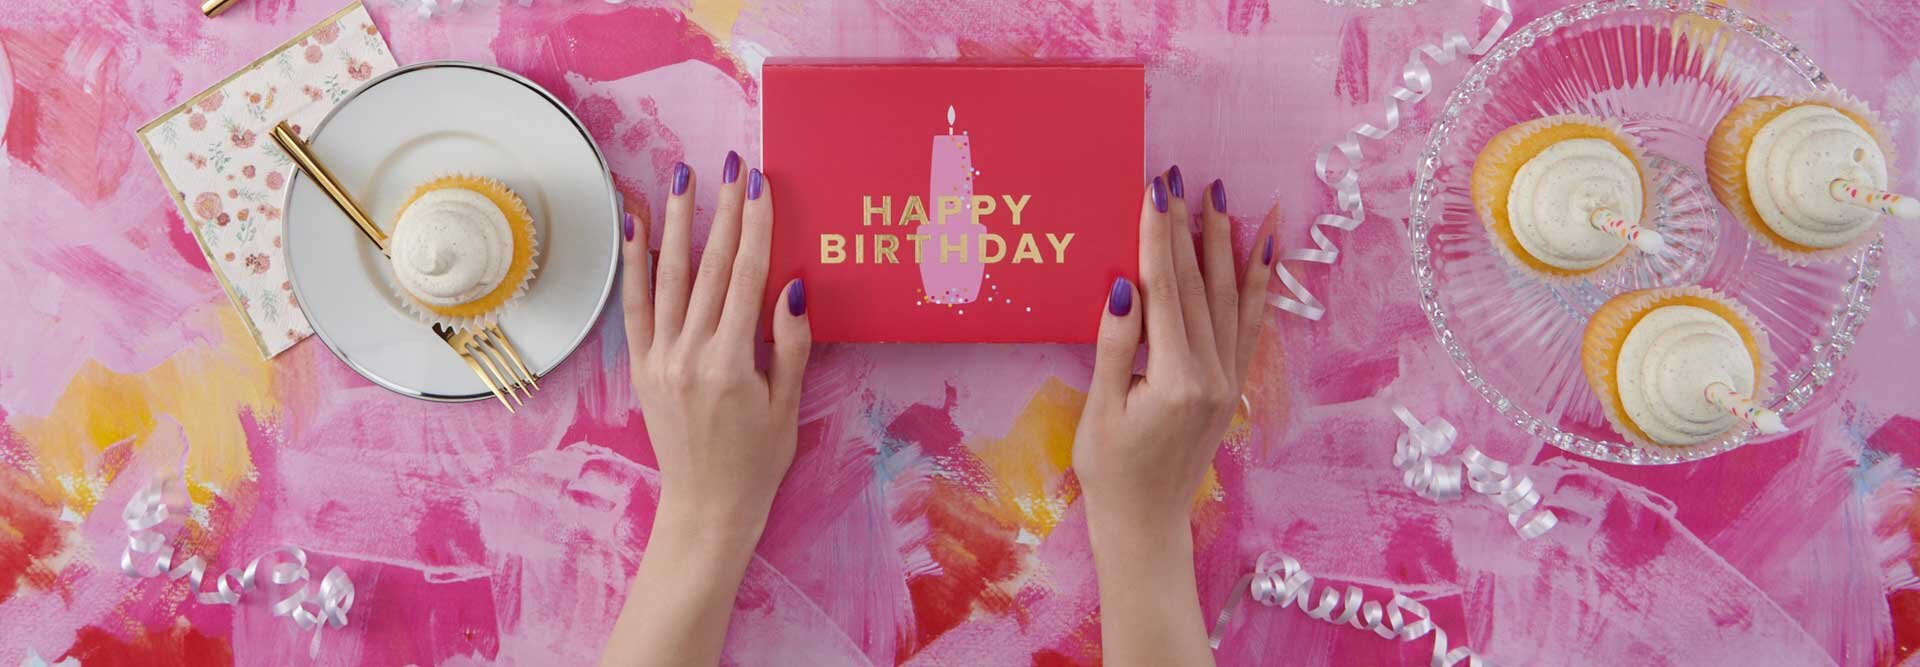 OPI Personalized gifting